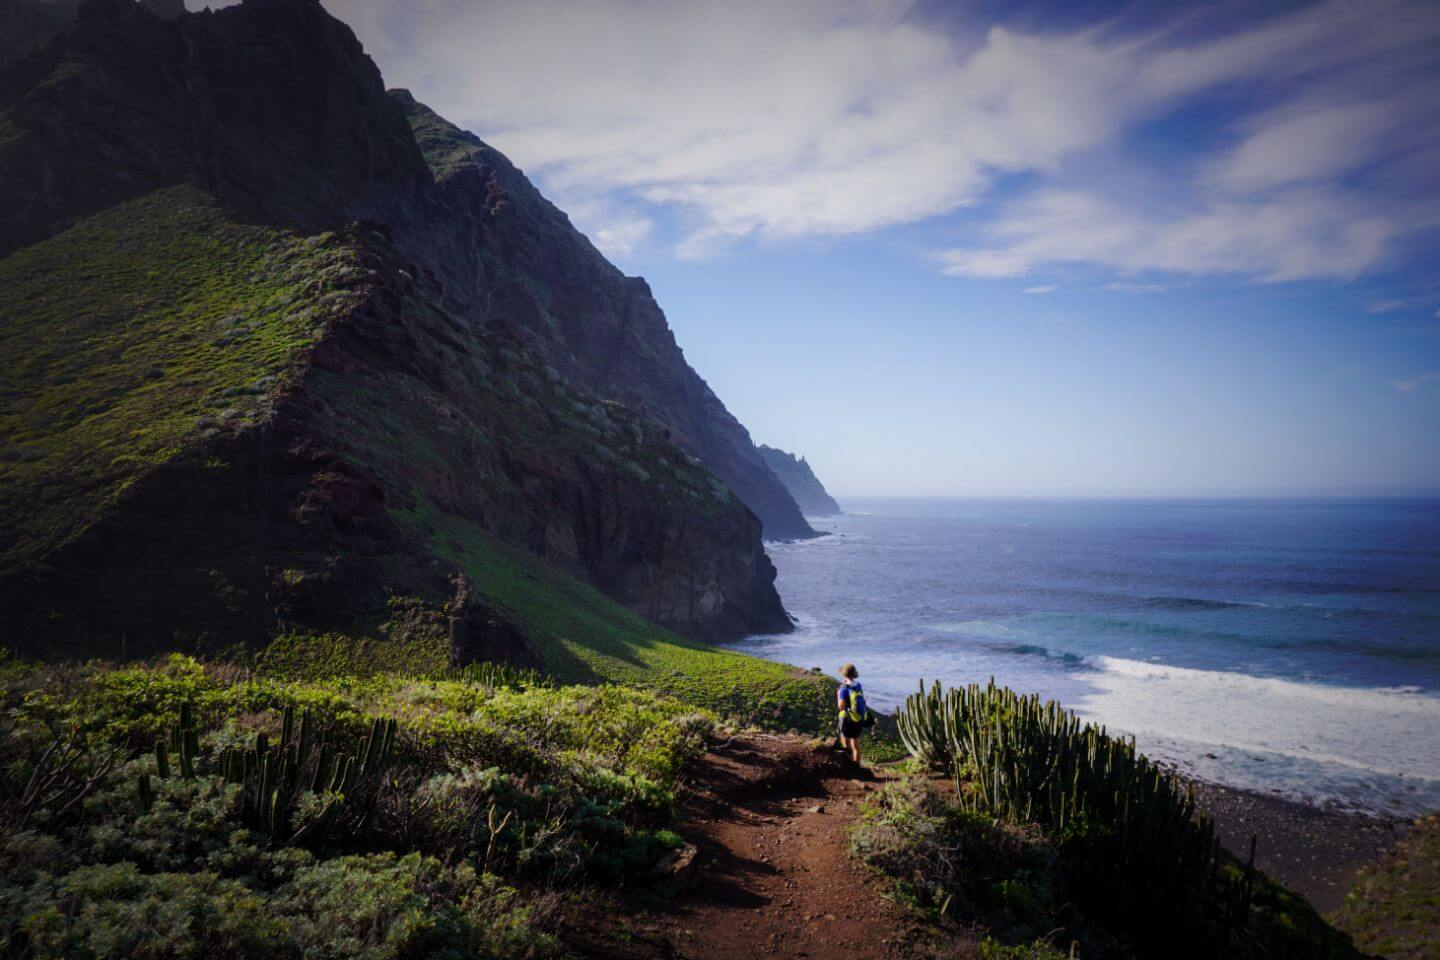 Playa de Tamadite, Anaga Mountains, Where to Stay in Tenerife for Hiking, Canary Islands, Spain